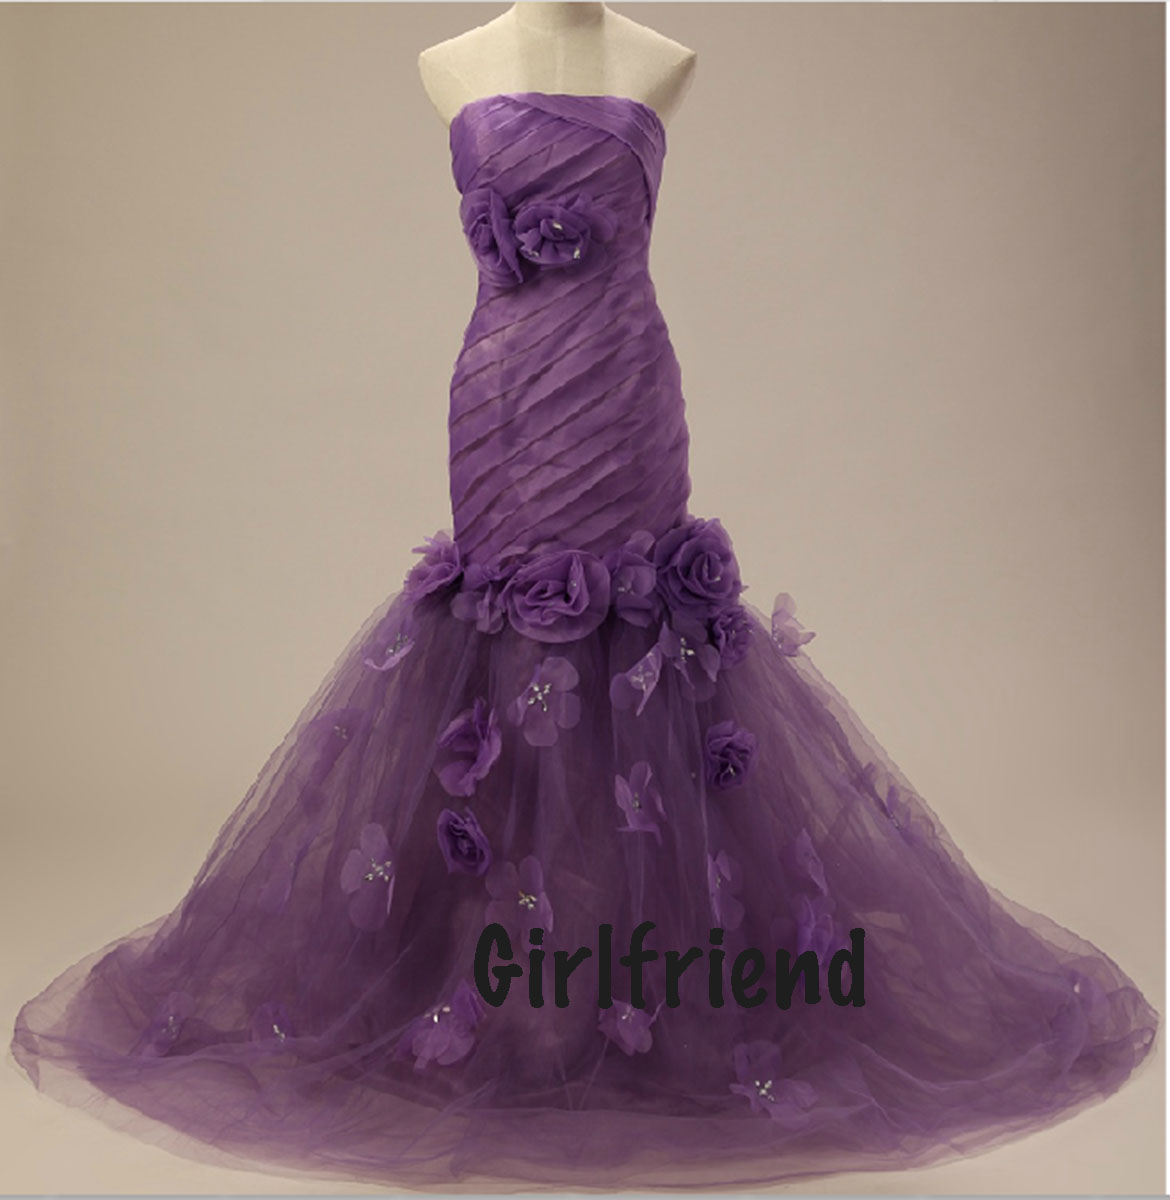 http://www.uplooder.net/img/image/21/b0bf69cfb2758c4bad4177f242d74b87/0162-chiffon-long-prom-dress_original.jpg